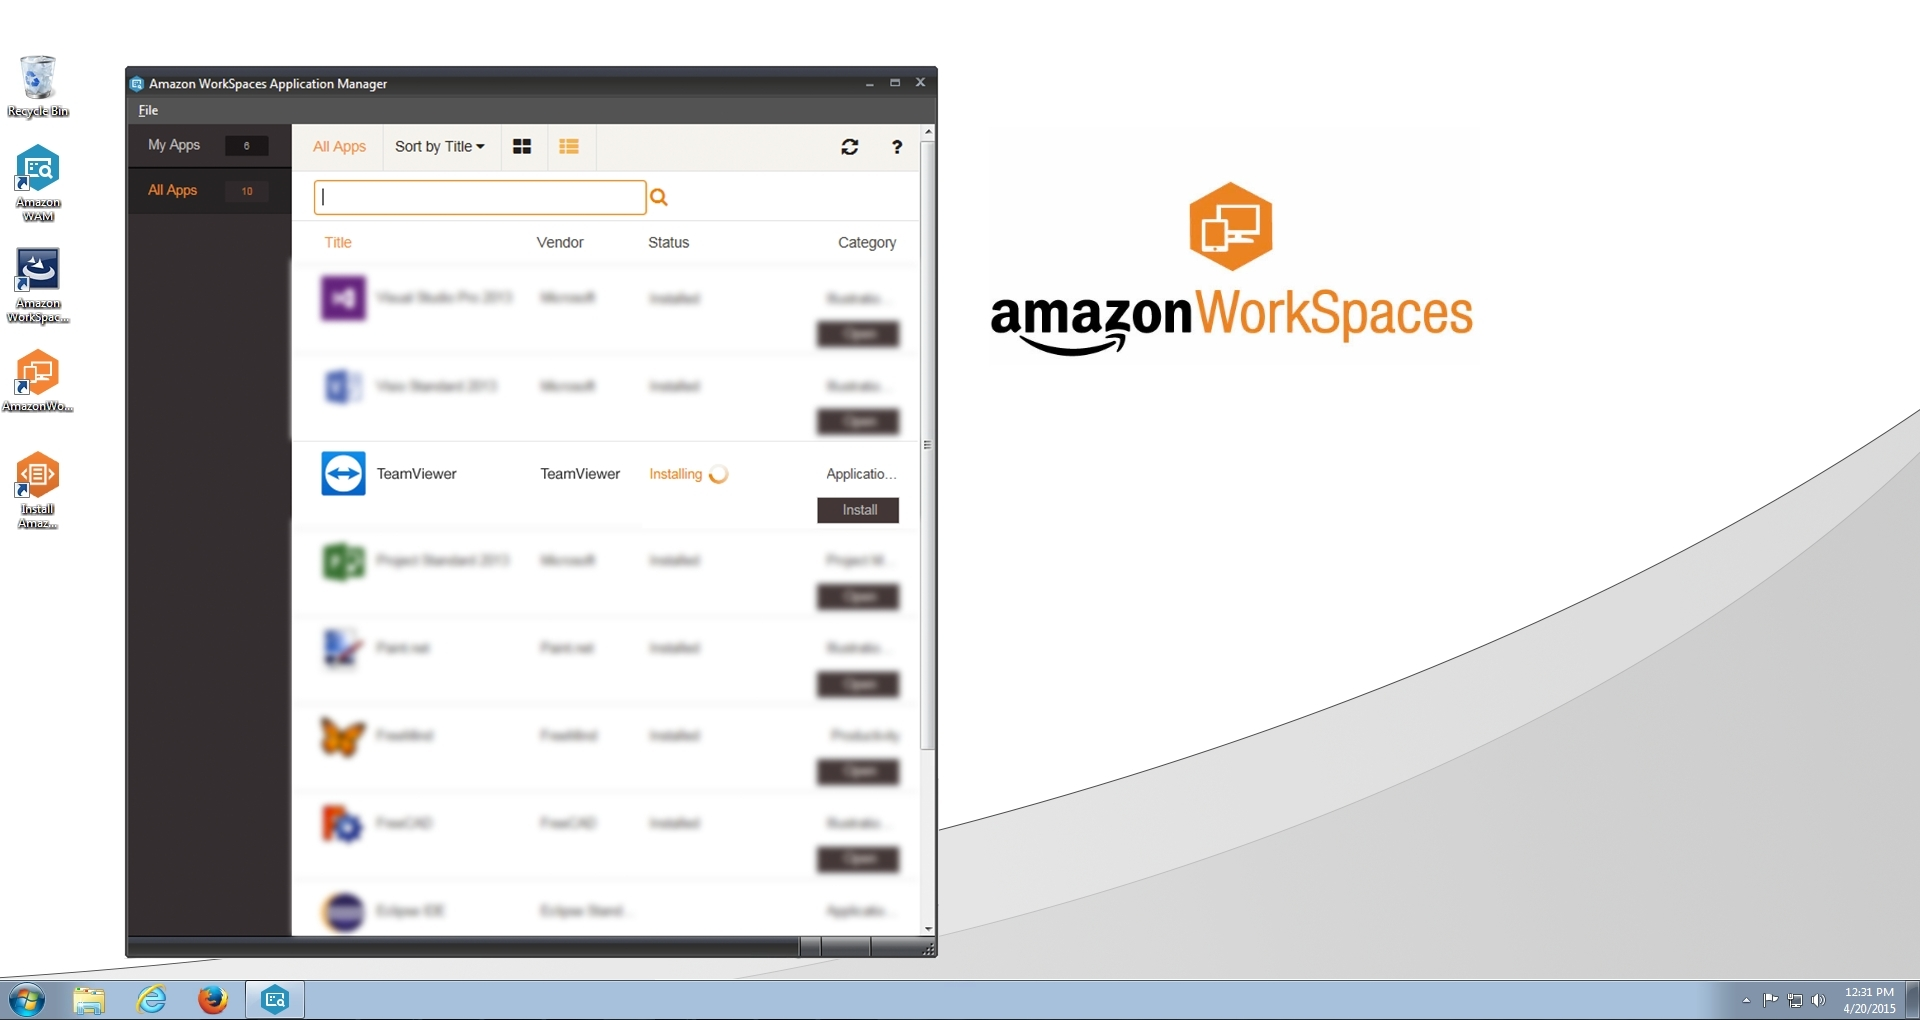 Aws Gmbh teamviewer now available on aws marketplace for desktop apps a